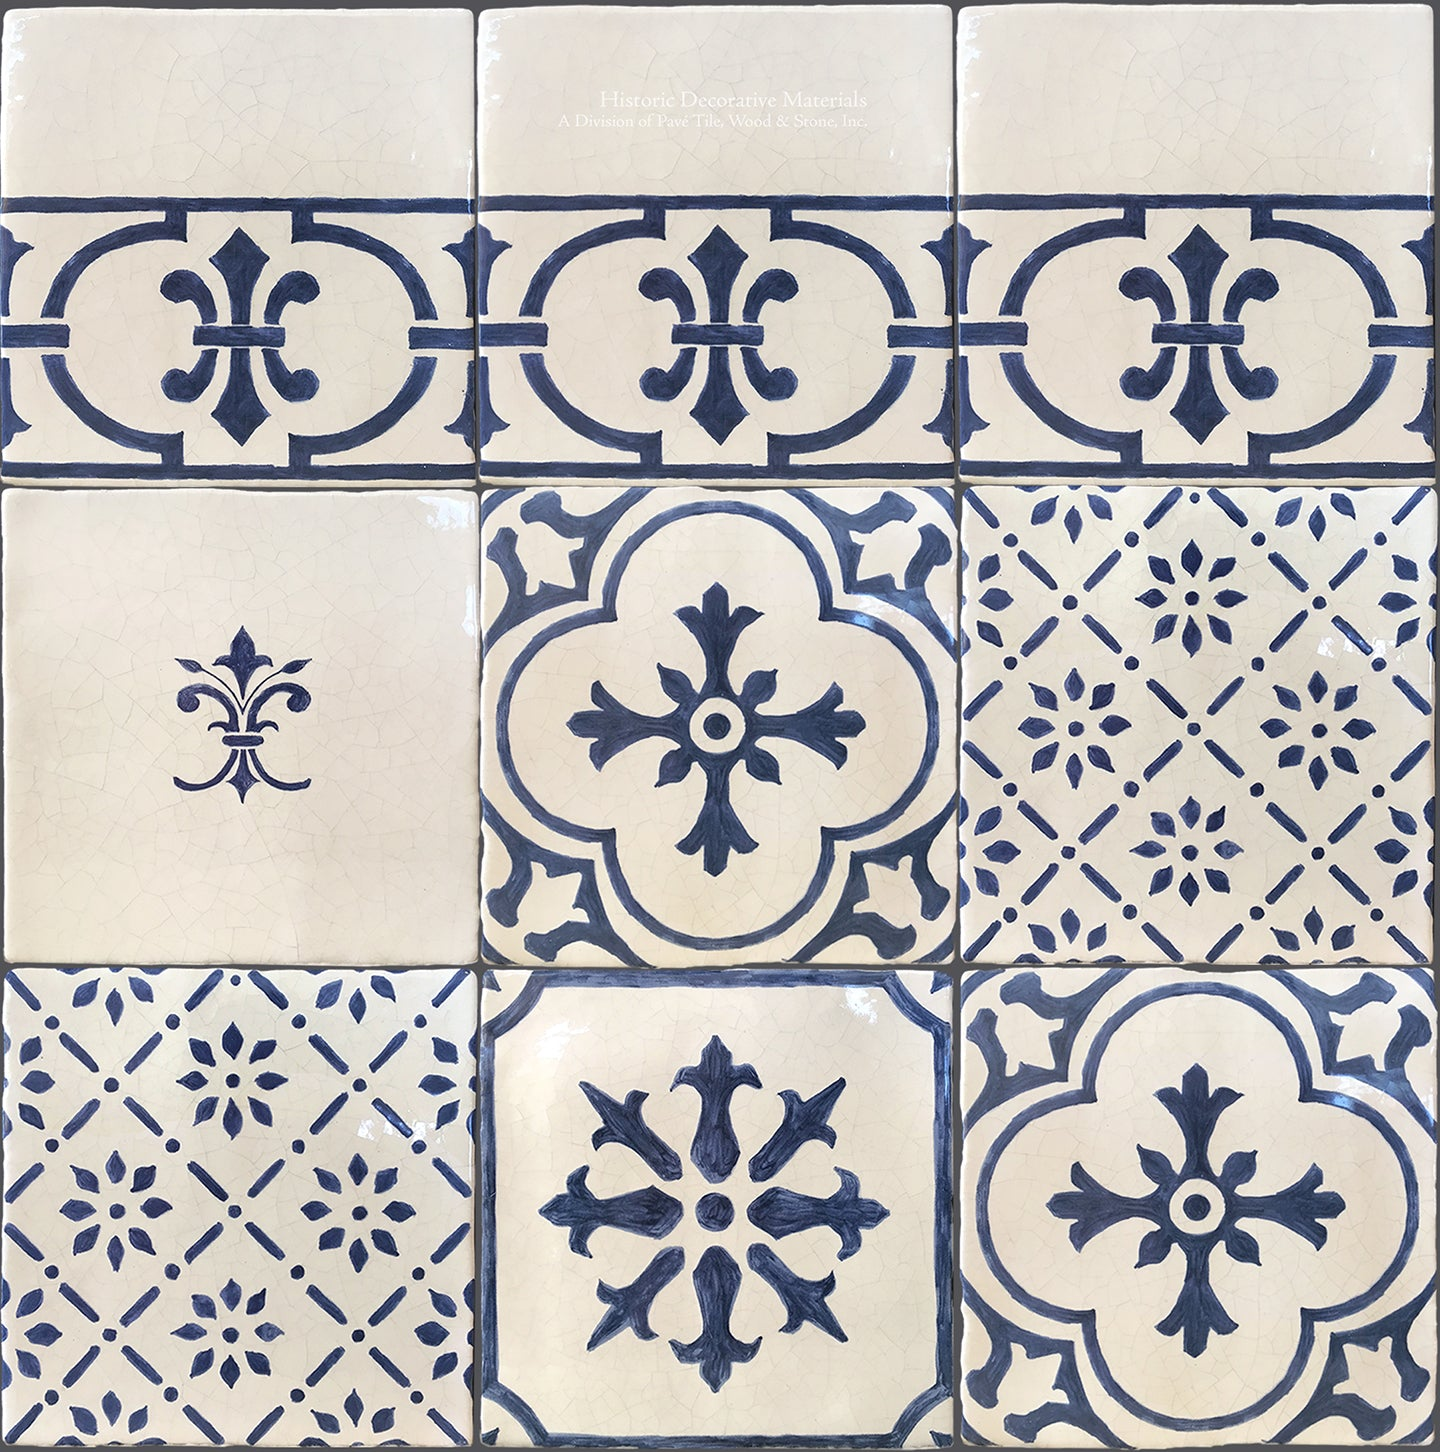 Monet S Blue And White Decorative Wall Tiles For Kitchens And Baths Historic Decorative Materials A Division Of Pave Tile Wood Stone Inc